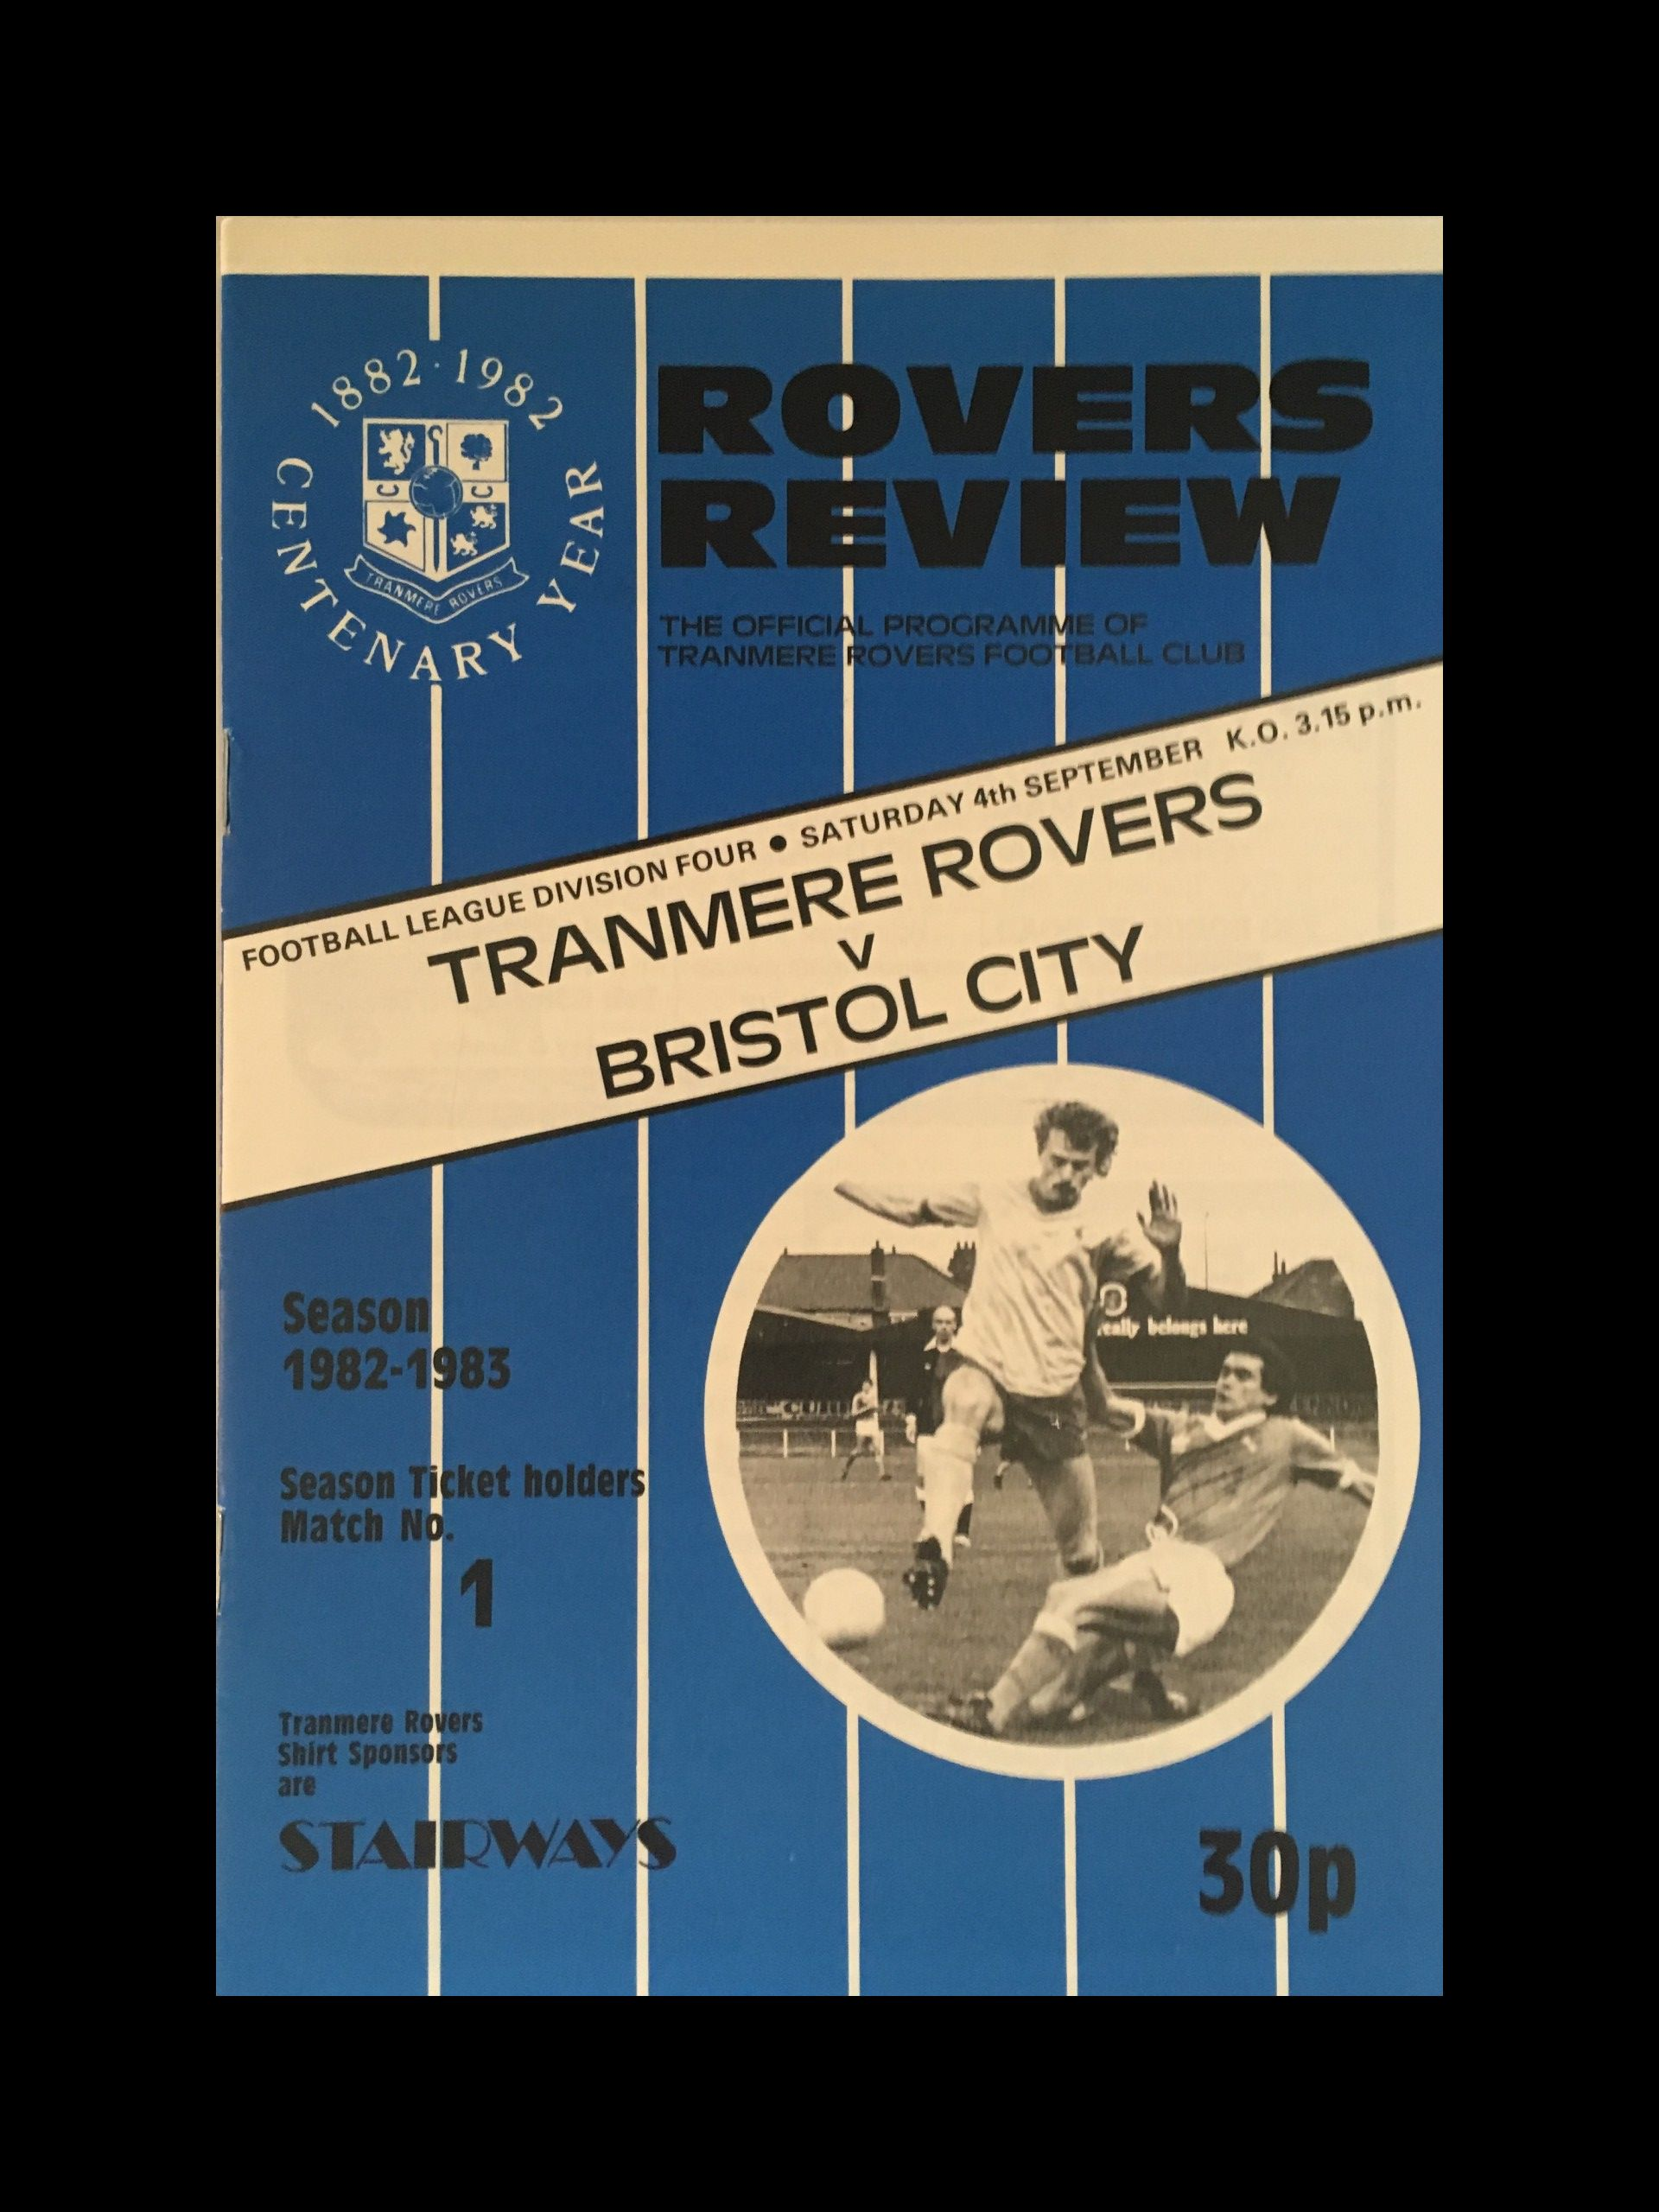 Tranmere Rovers v Bristol City 04-09-82 Programme